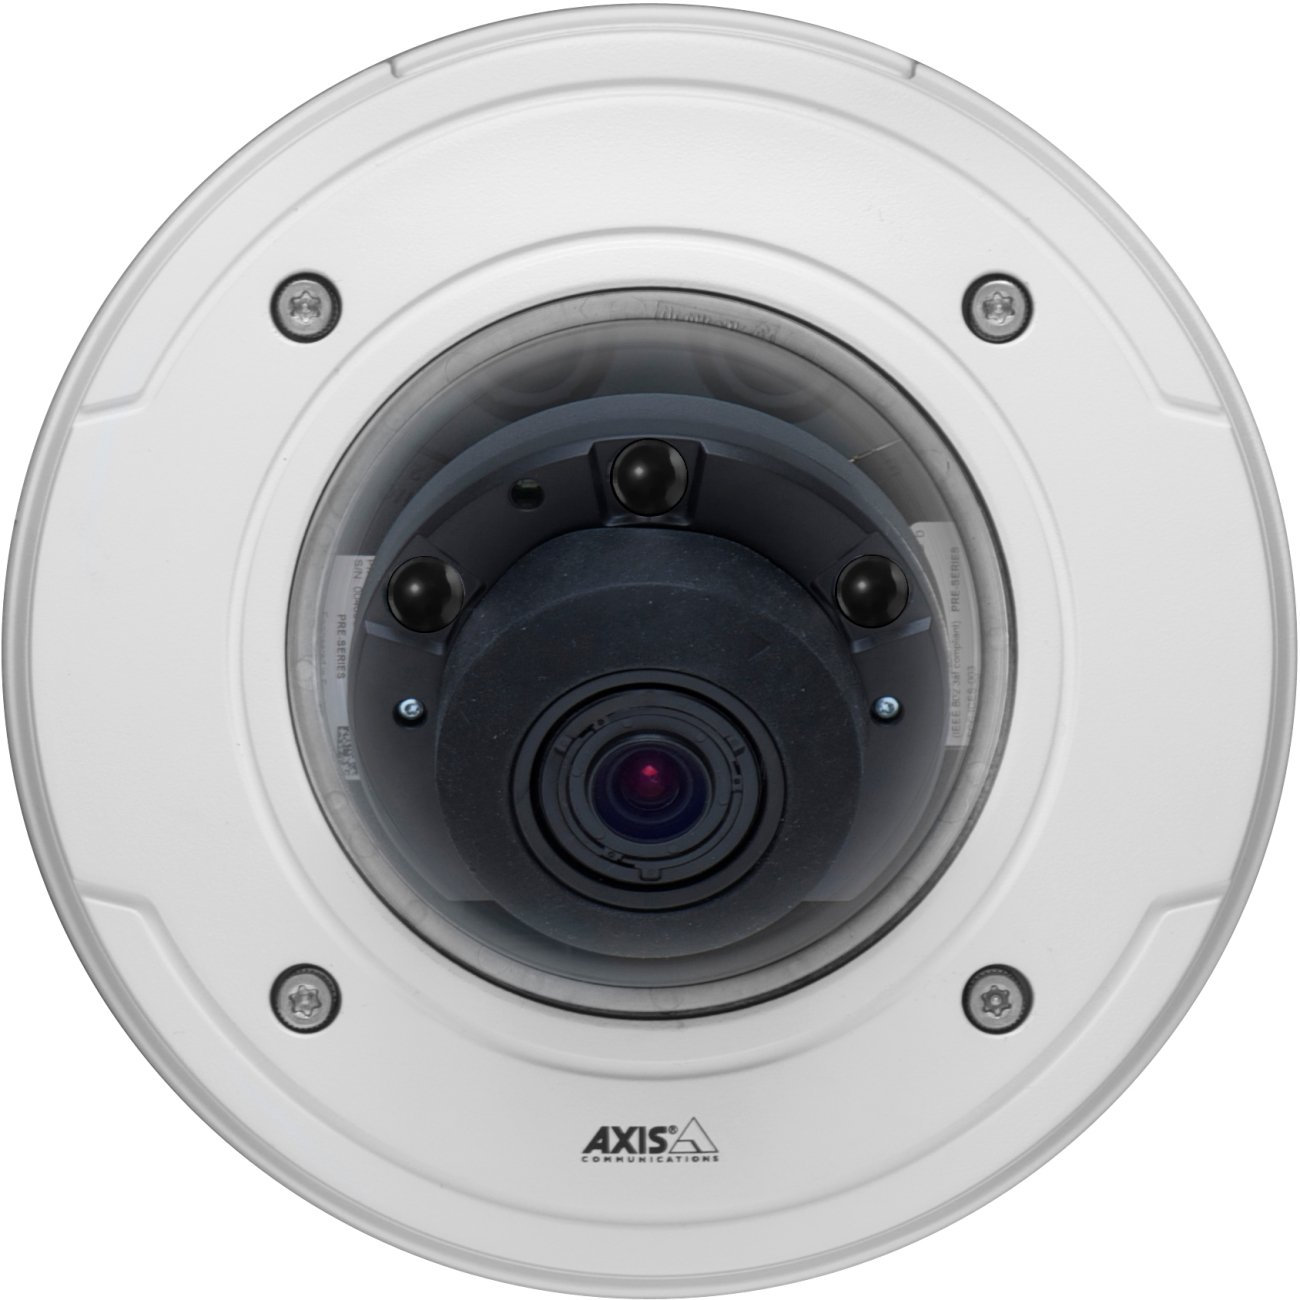 DRIVERS FOR AXIS P3364-LV NETWORK CAMERA